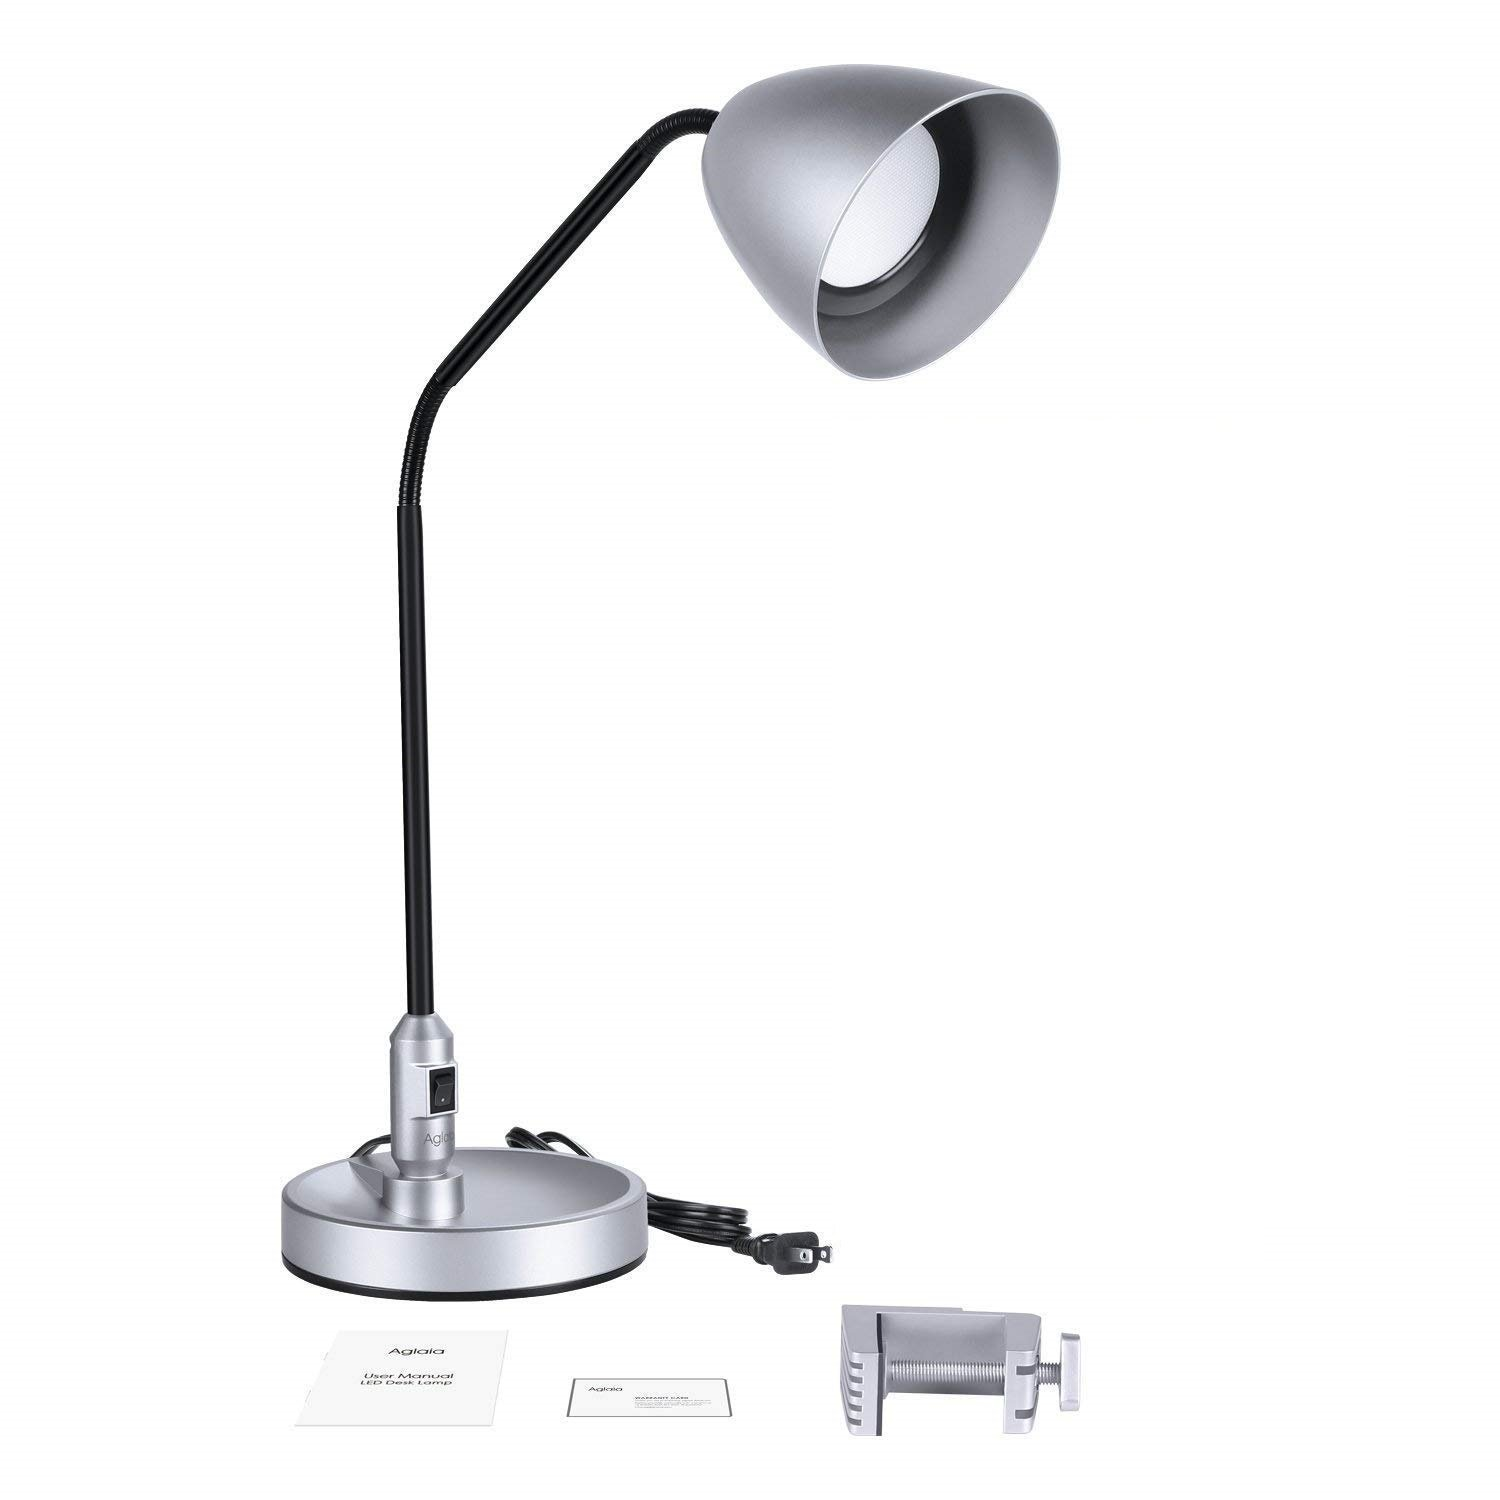 Aglaia LED Desk Lamp, Eye-Care Dimmable Reading Lamp, 6 Level Dimmer, 1-Hour Timer, Touch Sensitive Control, Flexible Gooseneck for Office Study Dorm LT-T4